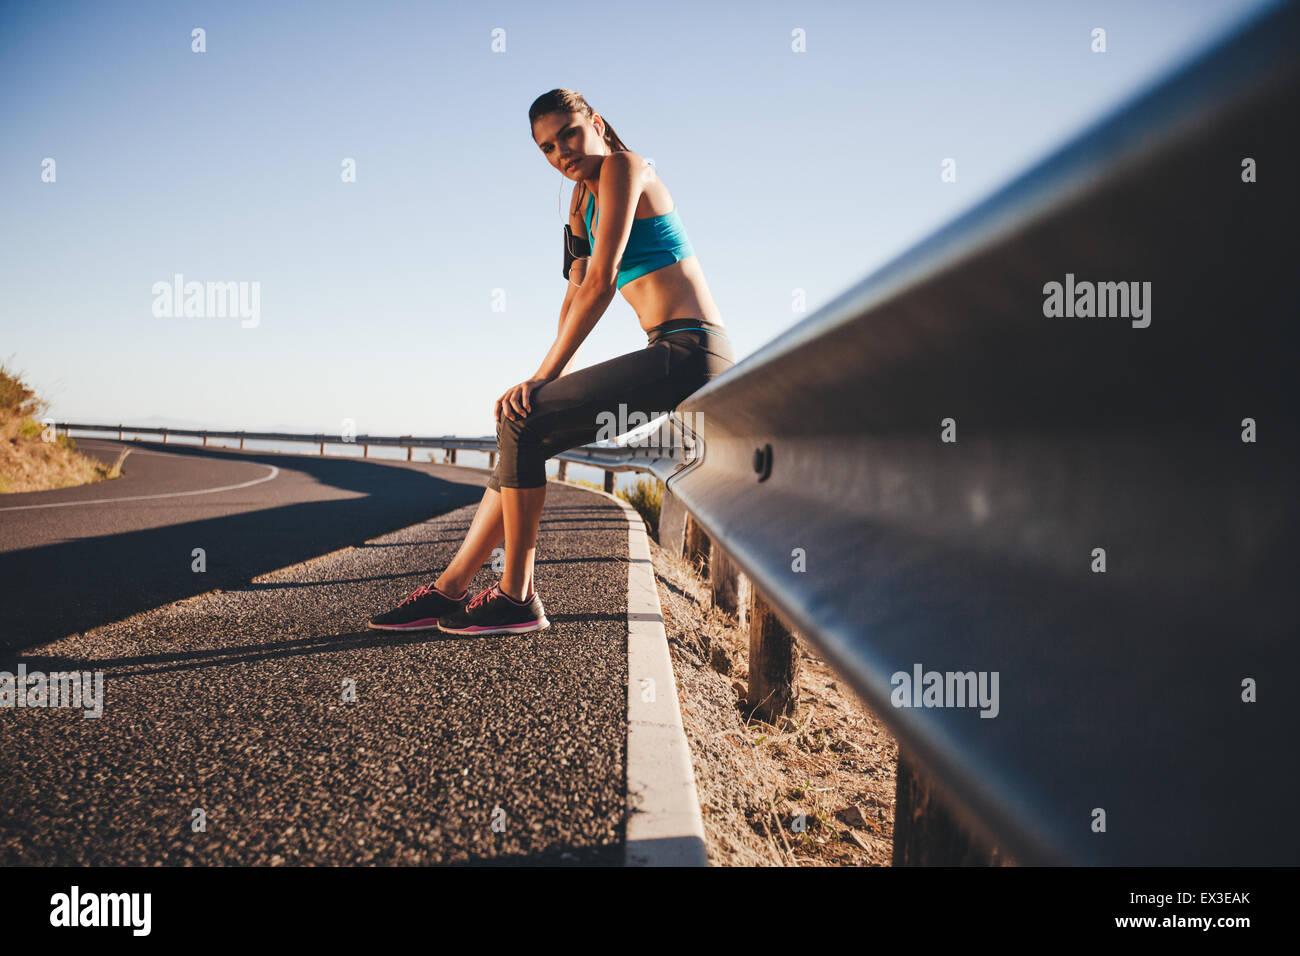 Tired young woman relaxing after a outdoor training session. Runner resting on road guardrail after morning run. - Stock Image